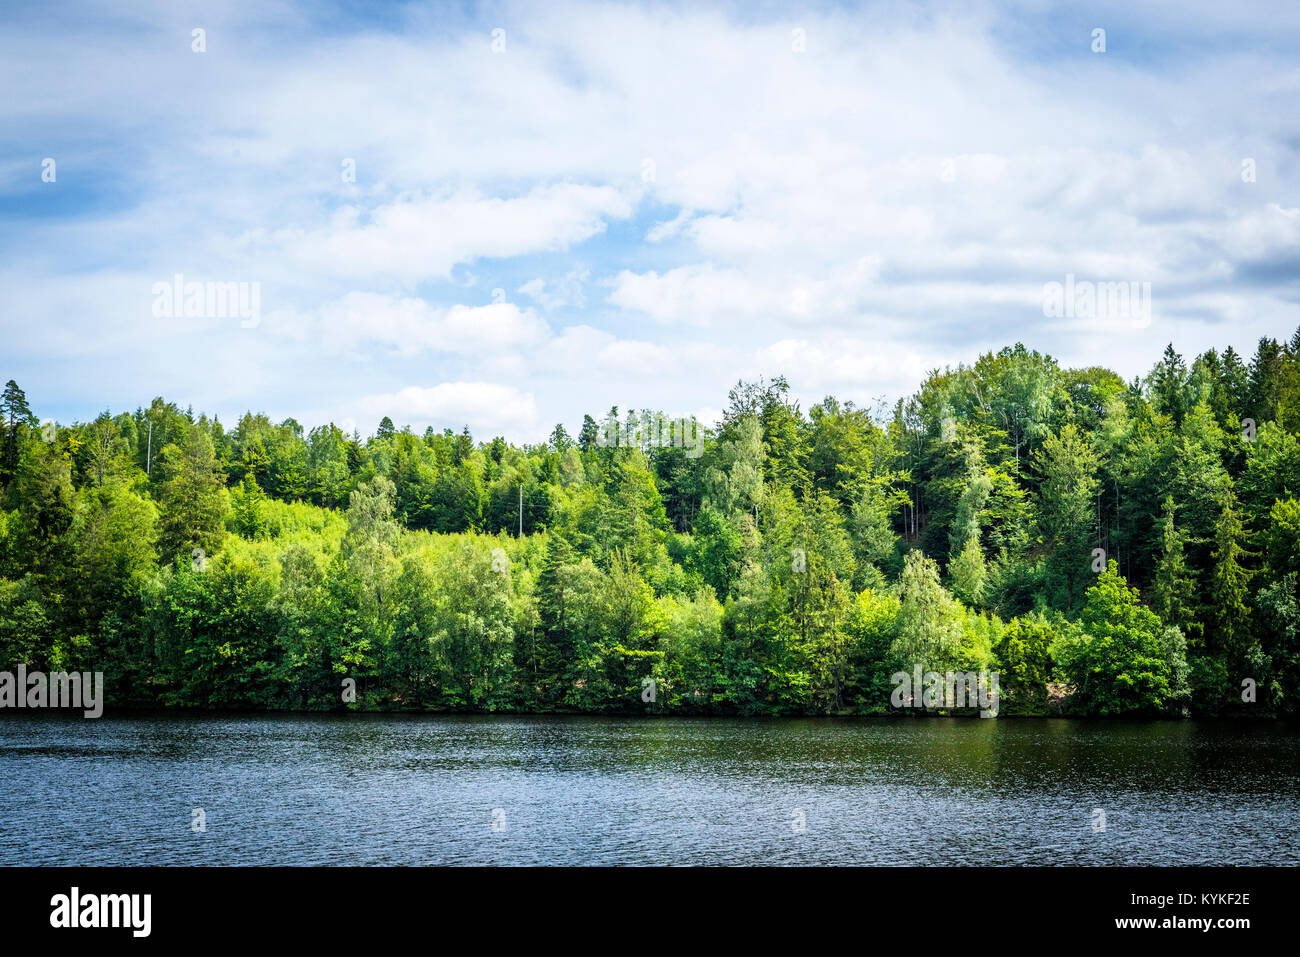 Lake scenery with green trees and blue sky in the summertime - Stock Image